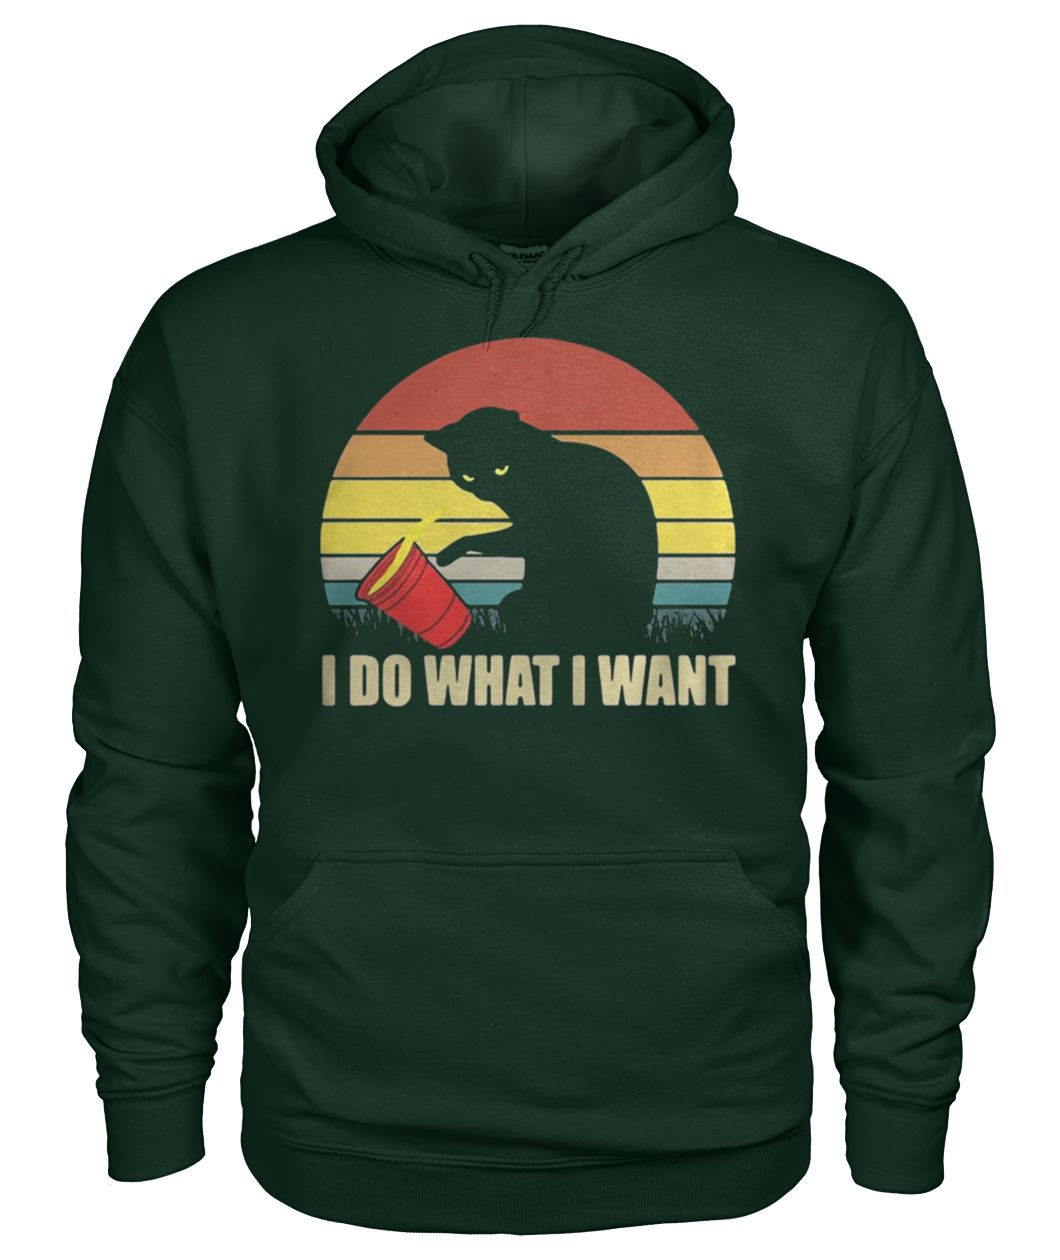 Captain marvel goose cat I do what I want vintage gildan hoodie